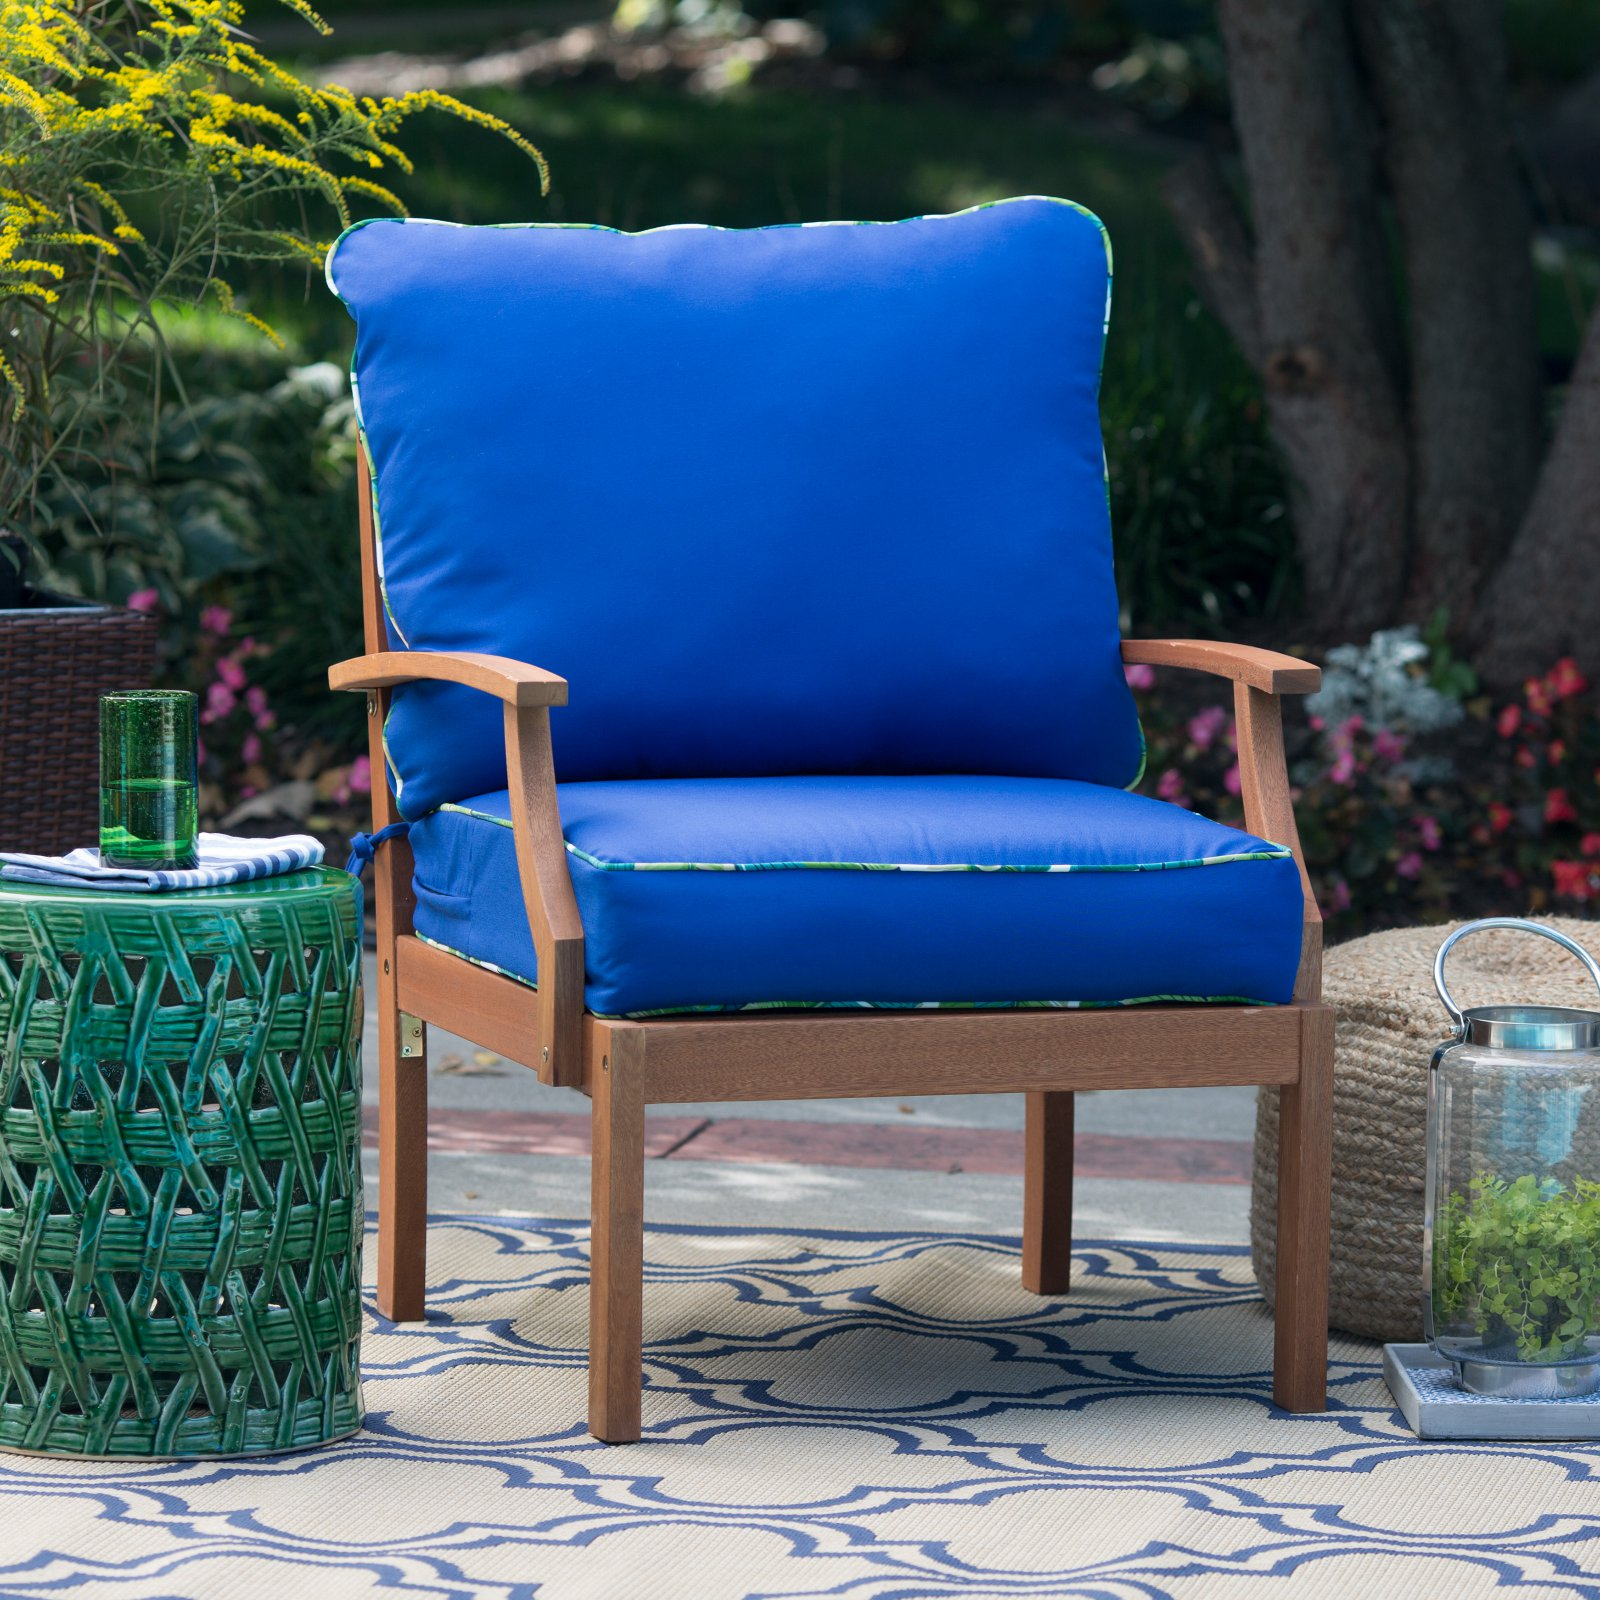 Coral Coast Curious Tropical Bird Deep Seat & Back Outdoor Cushion Set